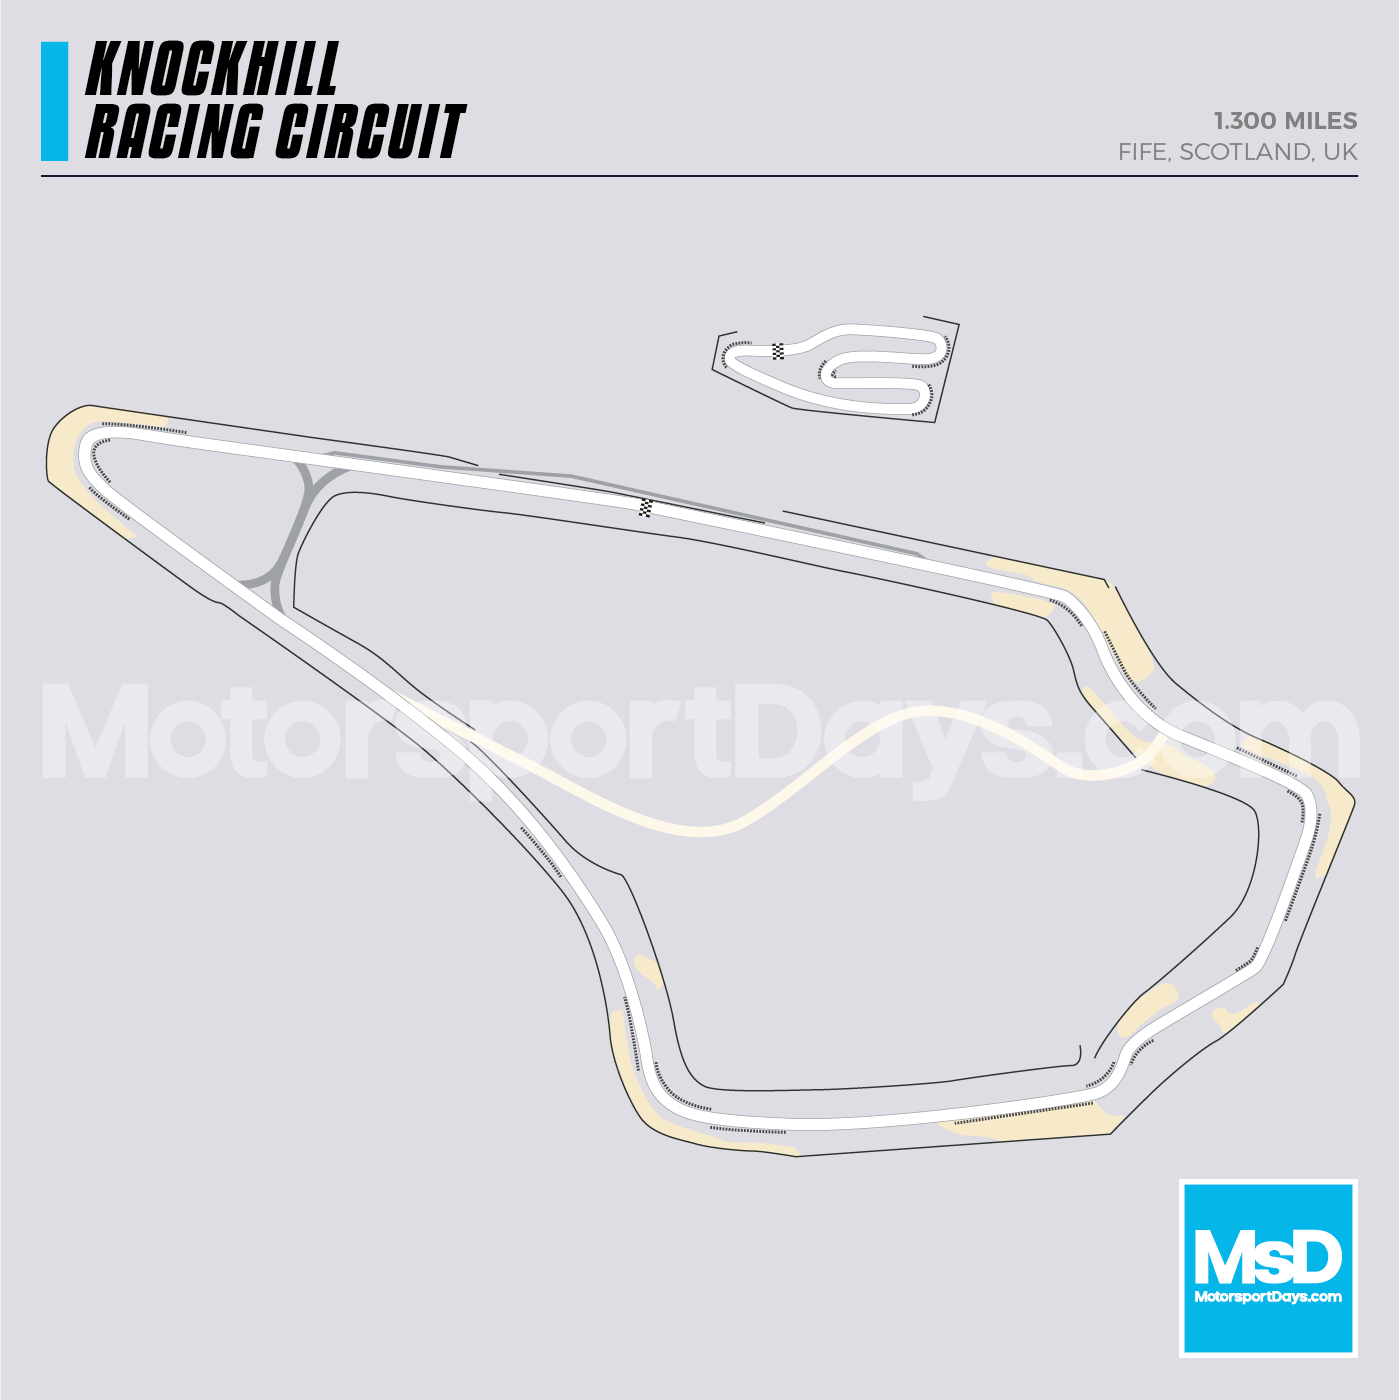 Knockhill-Circuit-track-map